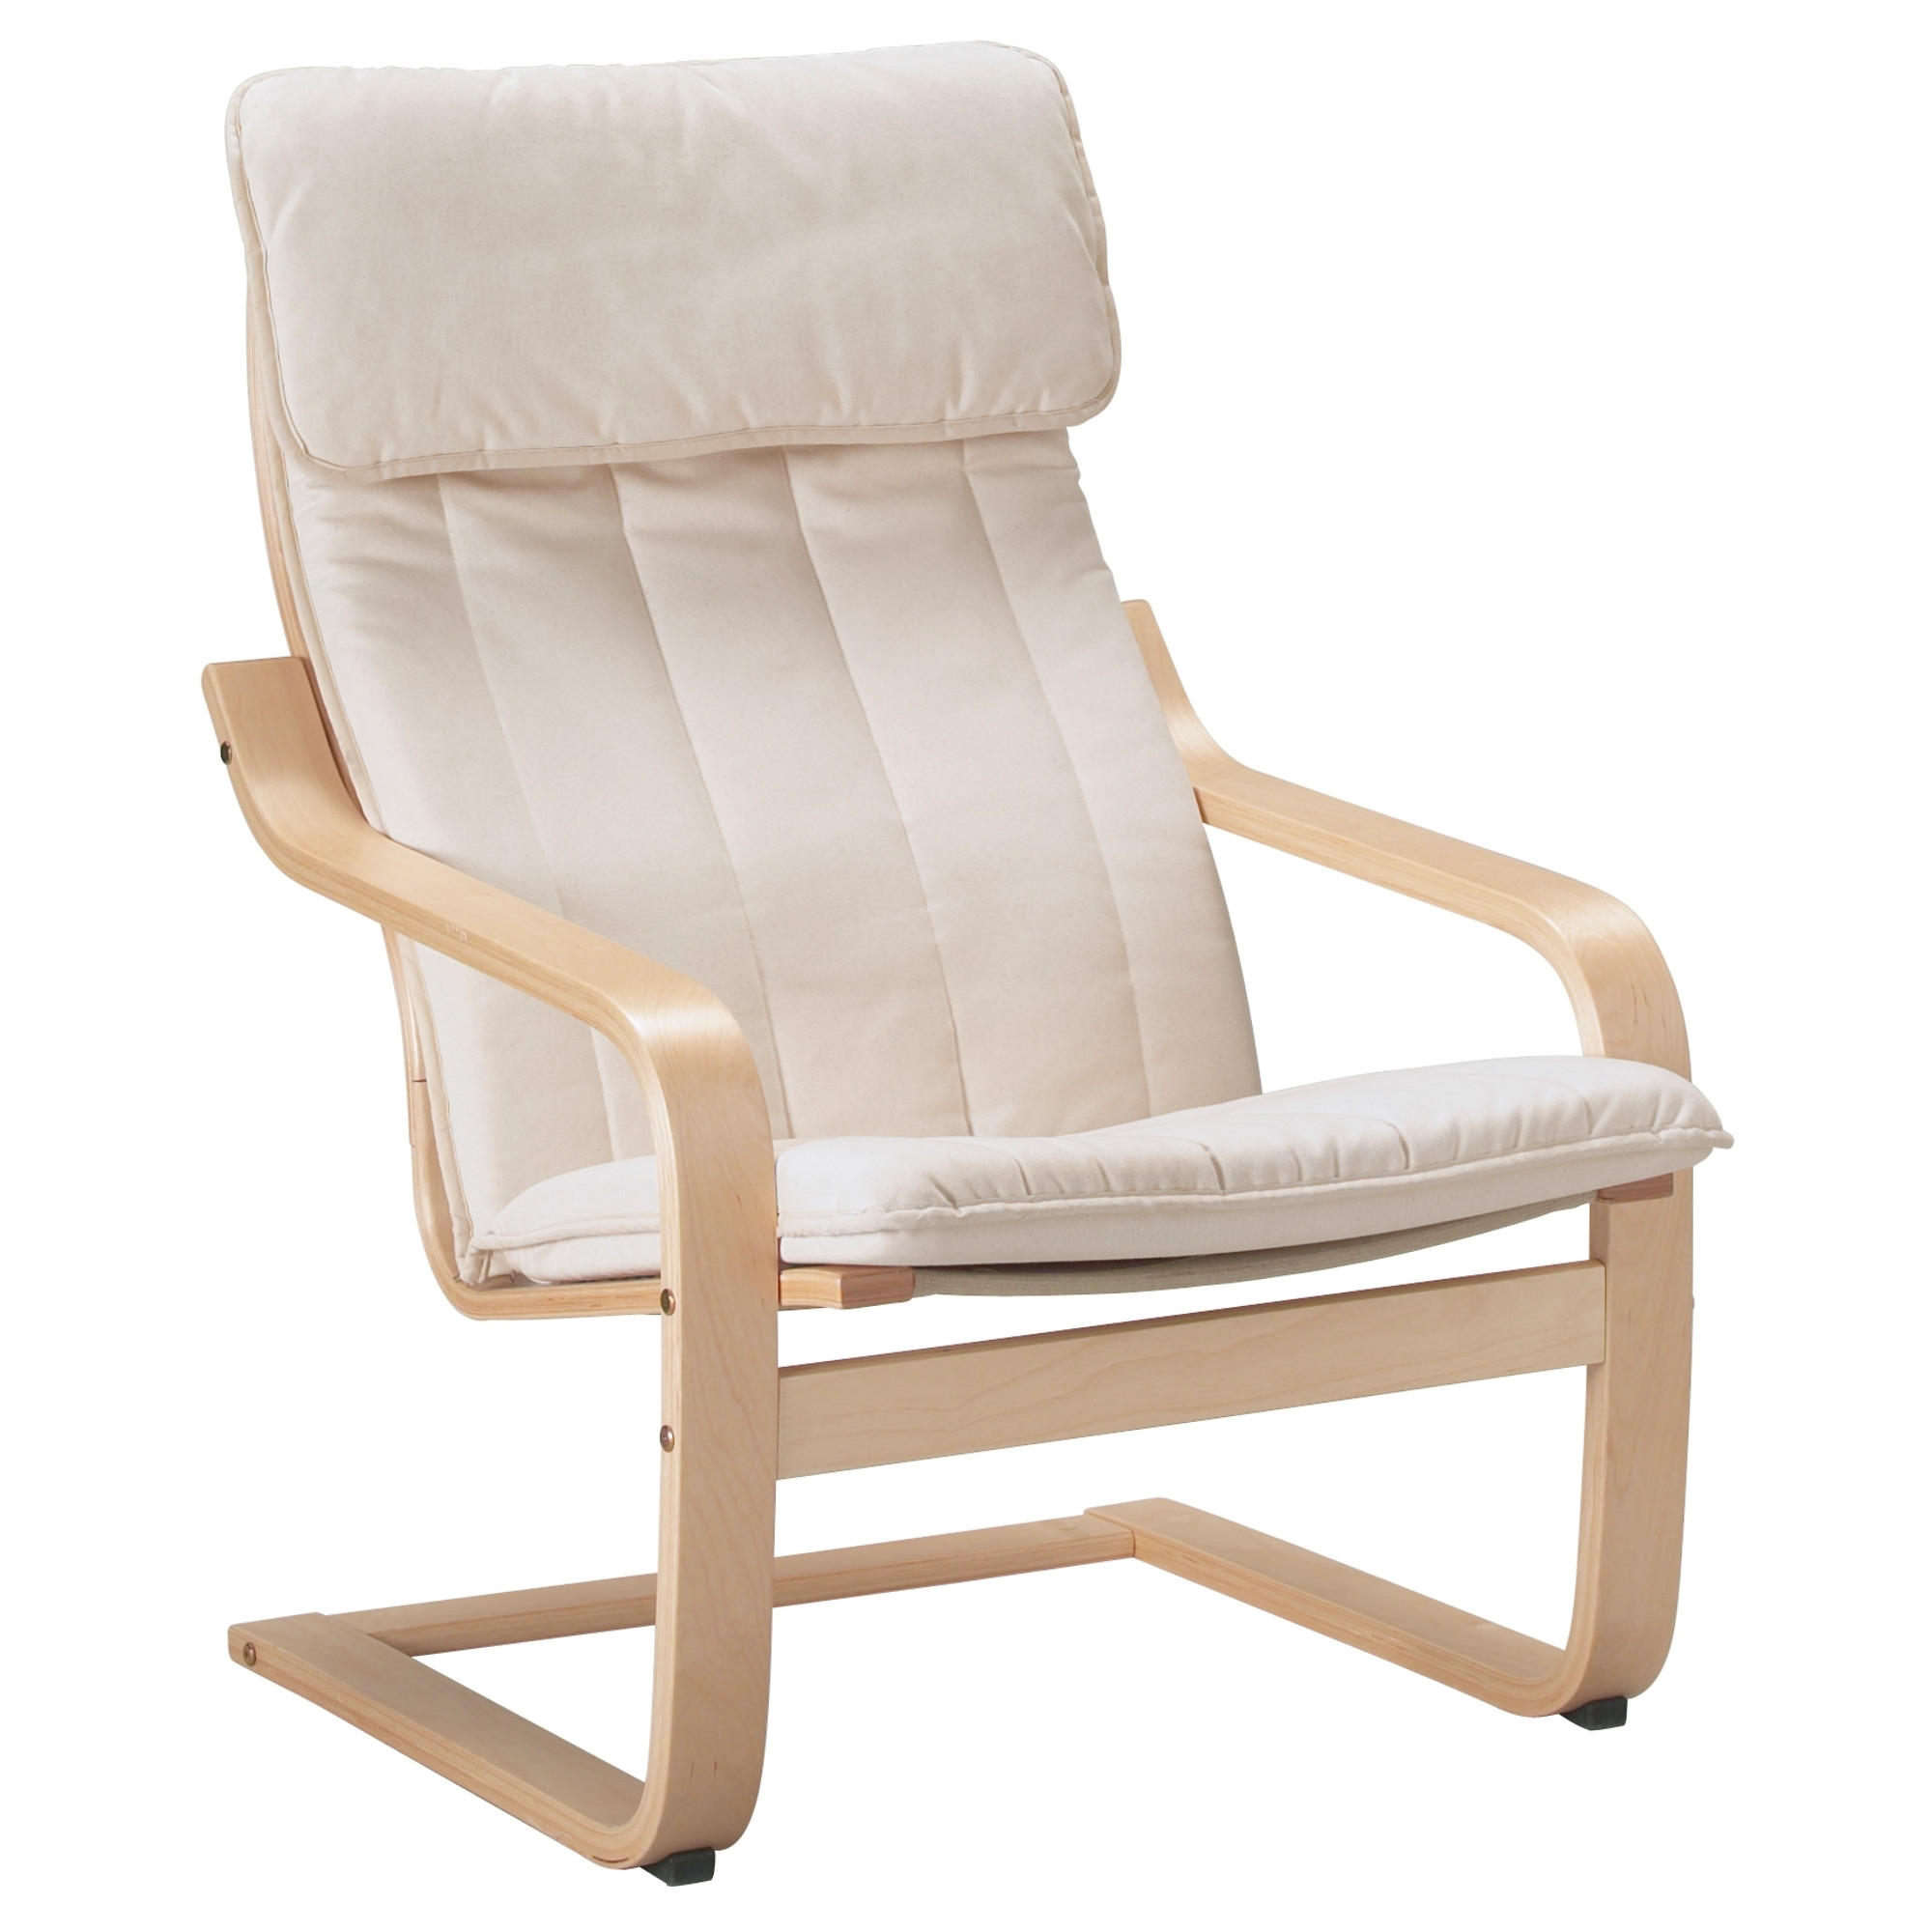 Ikea Rocking Chairs For Preferred Recliner Chair Ikea White Chaise Lounge Glider Wingback Armchair (View 6 of 20)